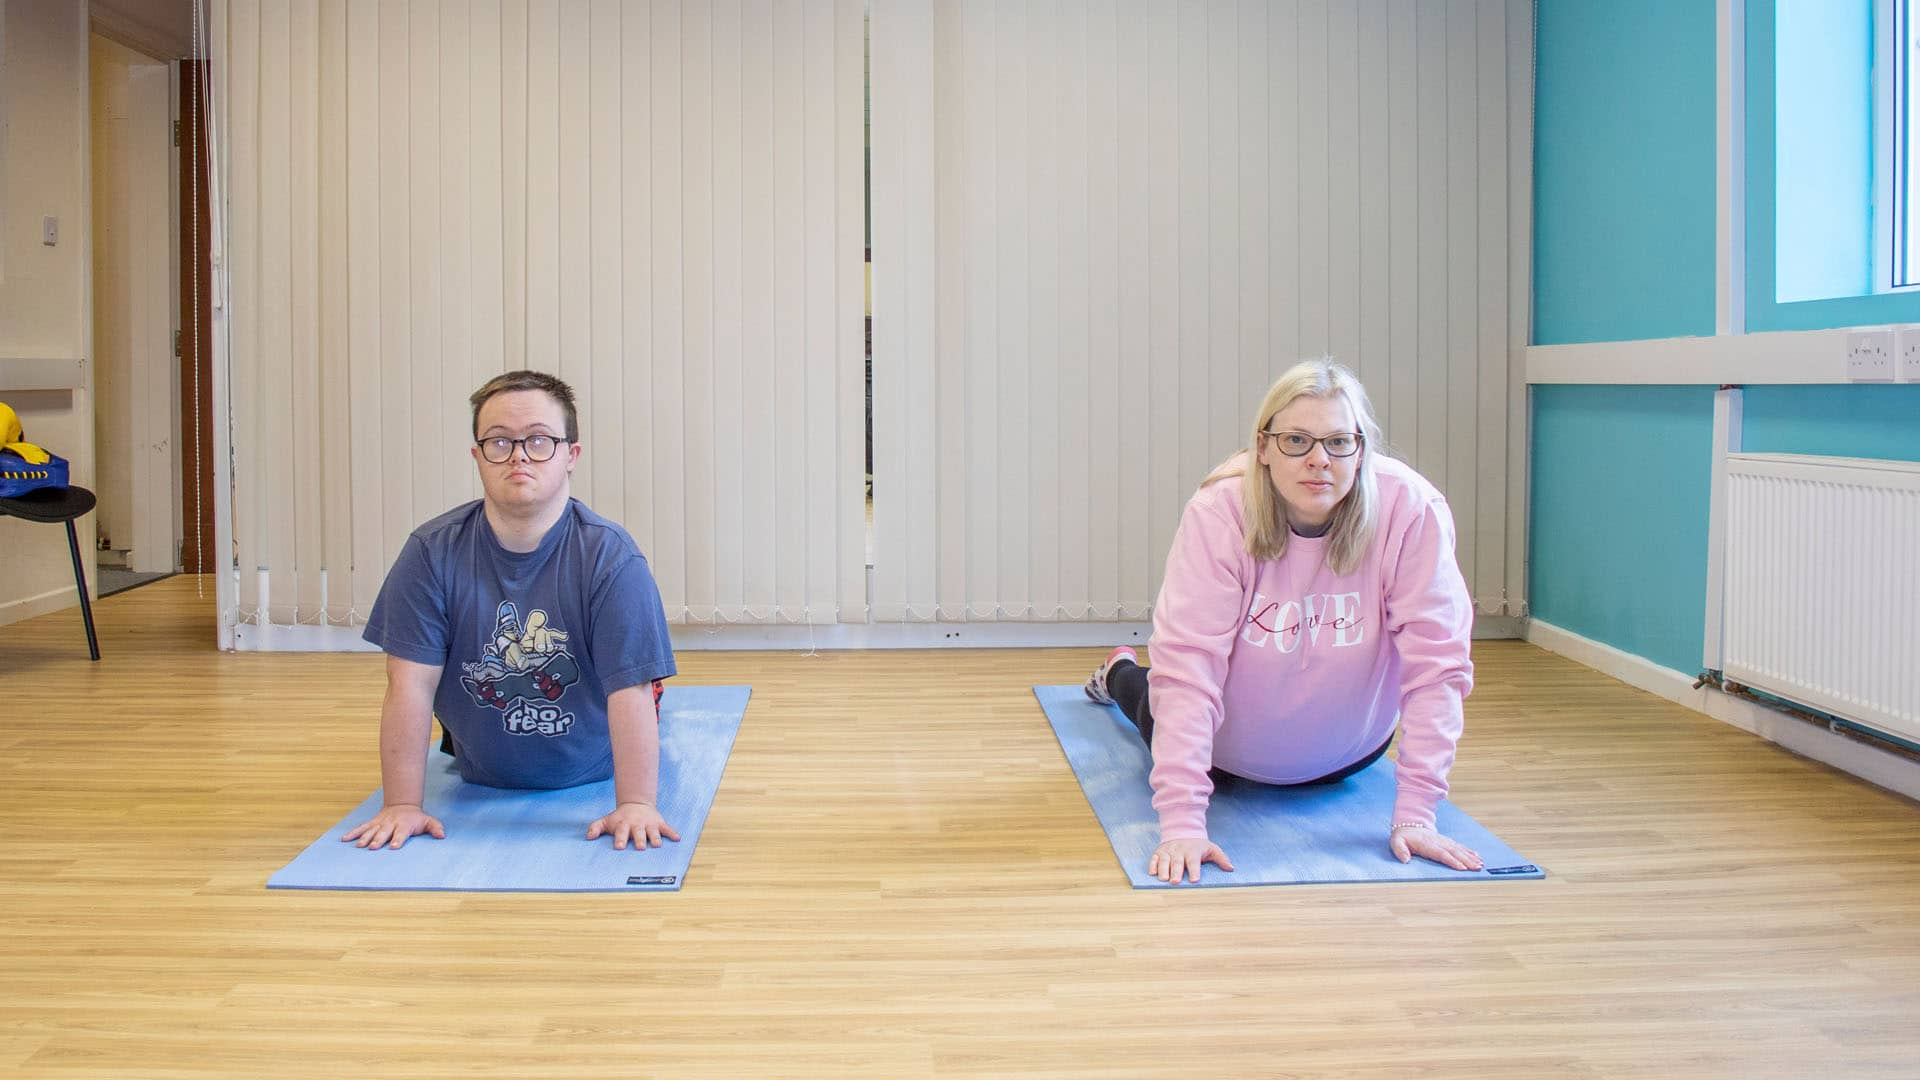 Service users doing yoga poses